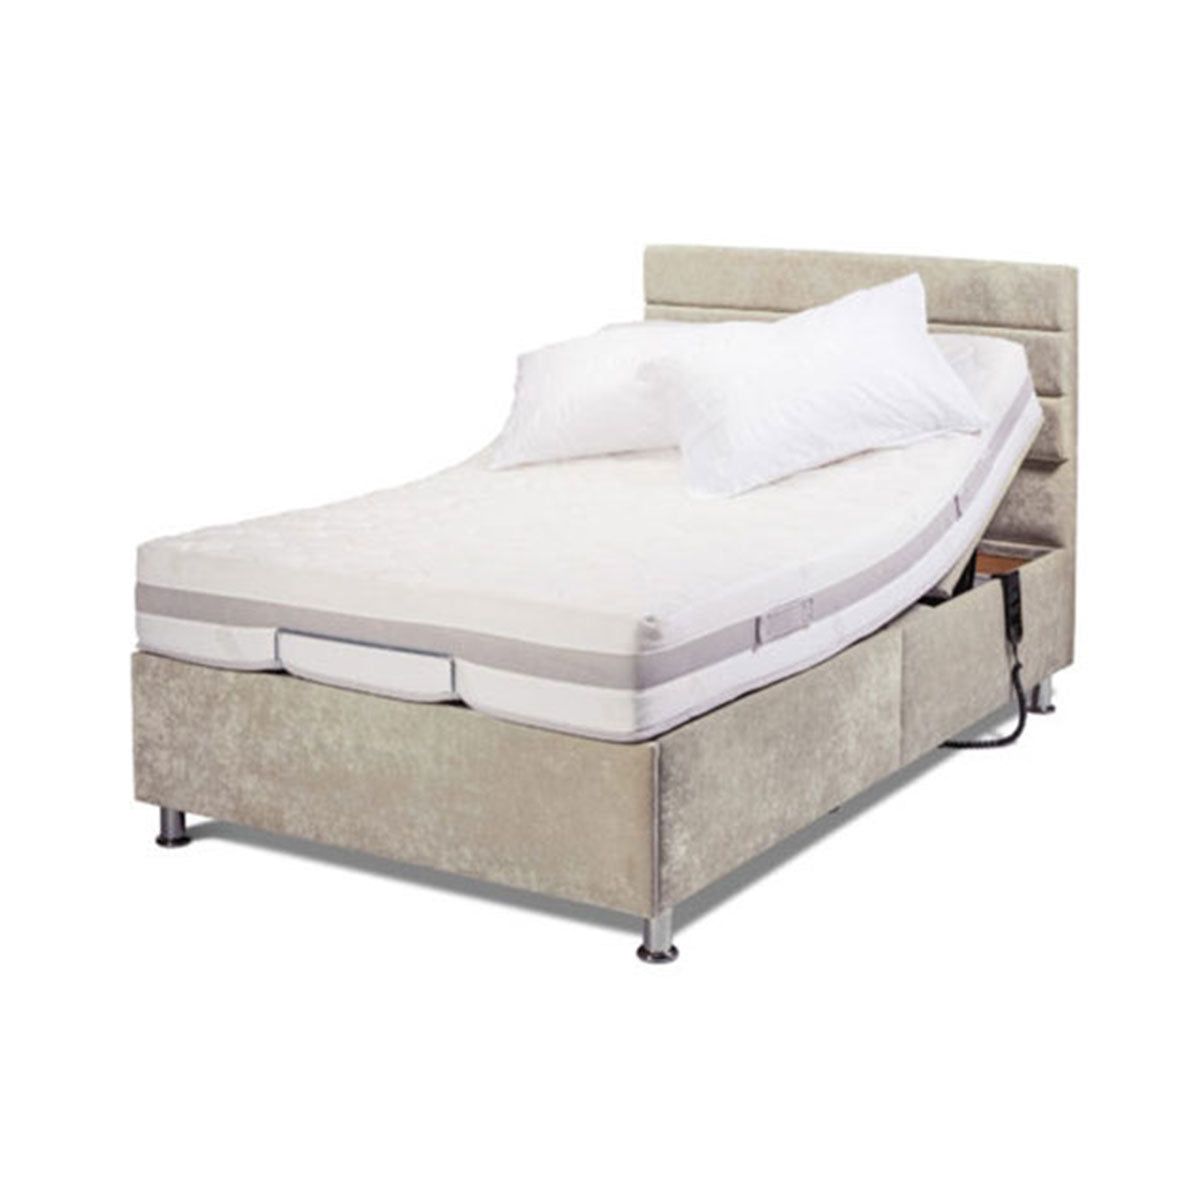 Sherborne 4' Hampton Head Adjustable Bed